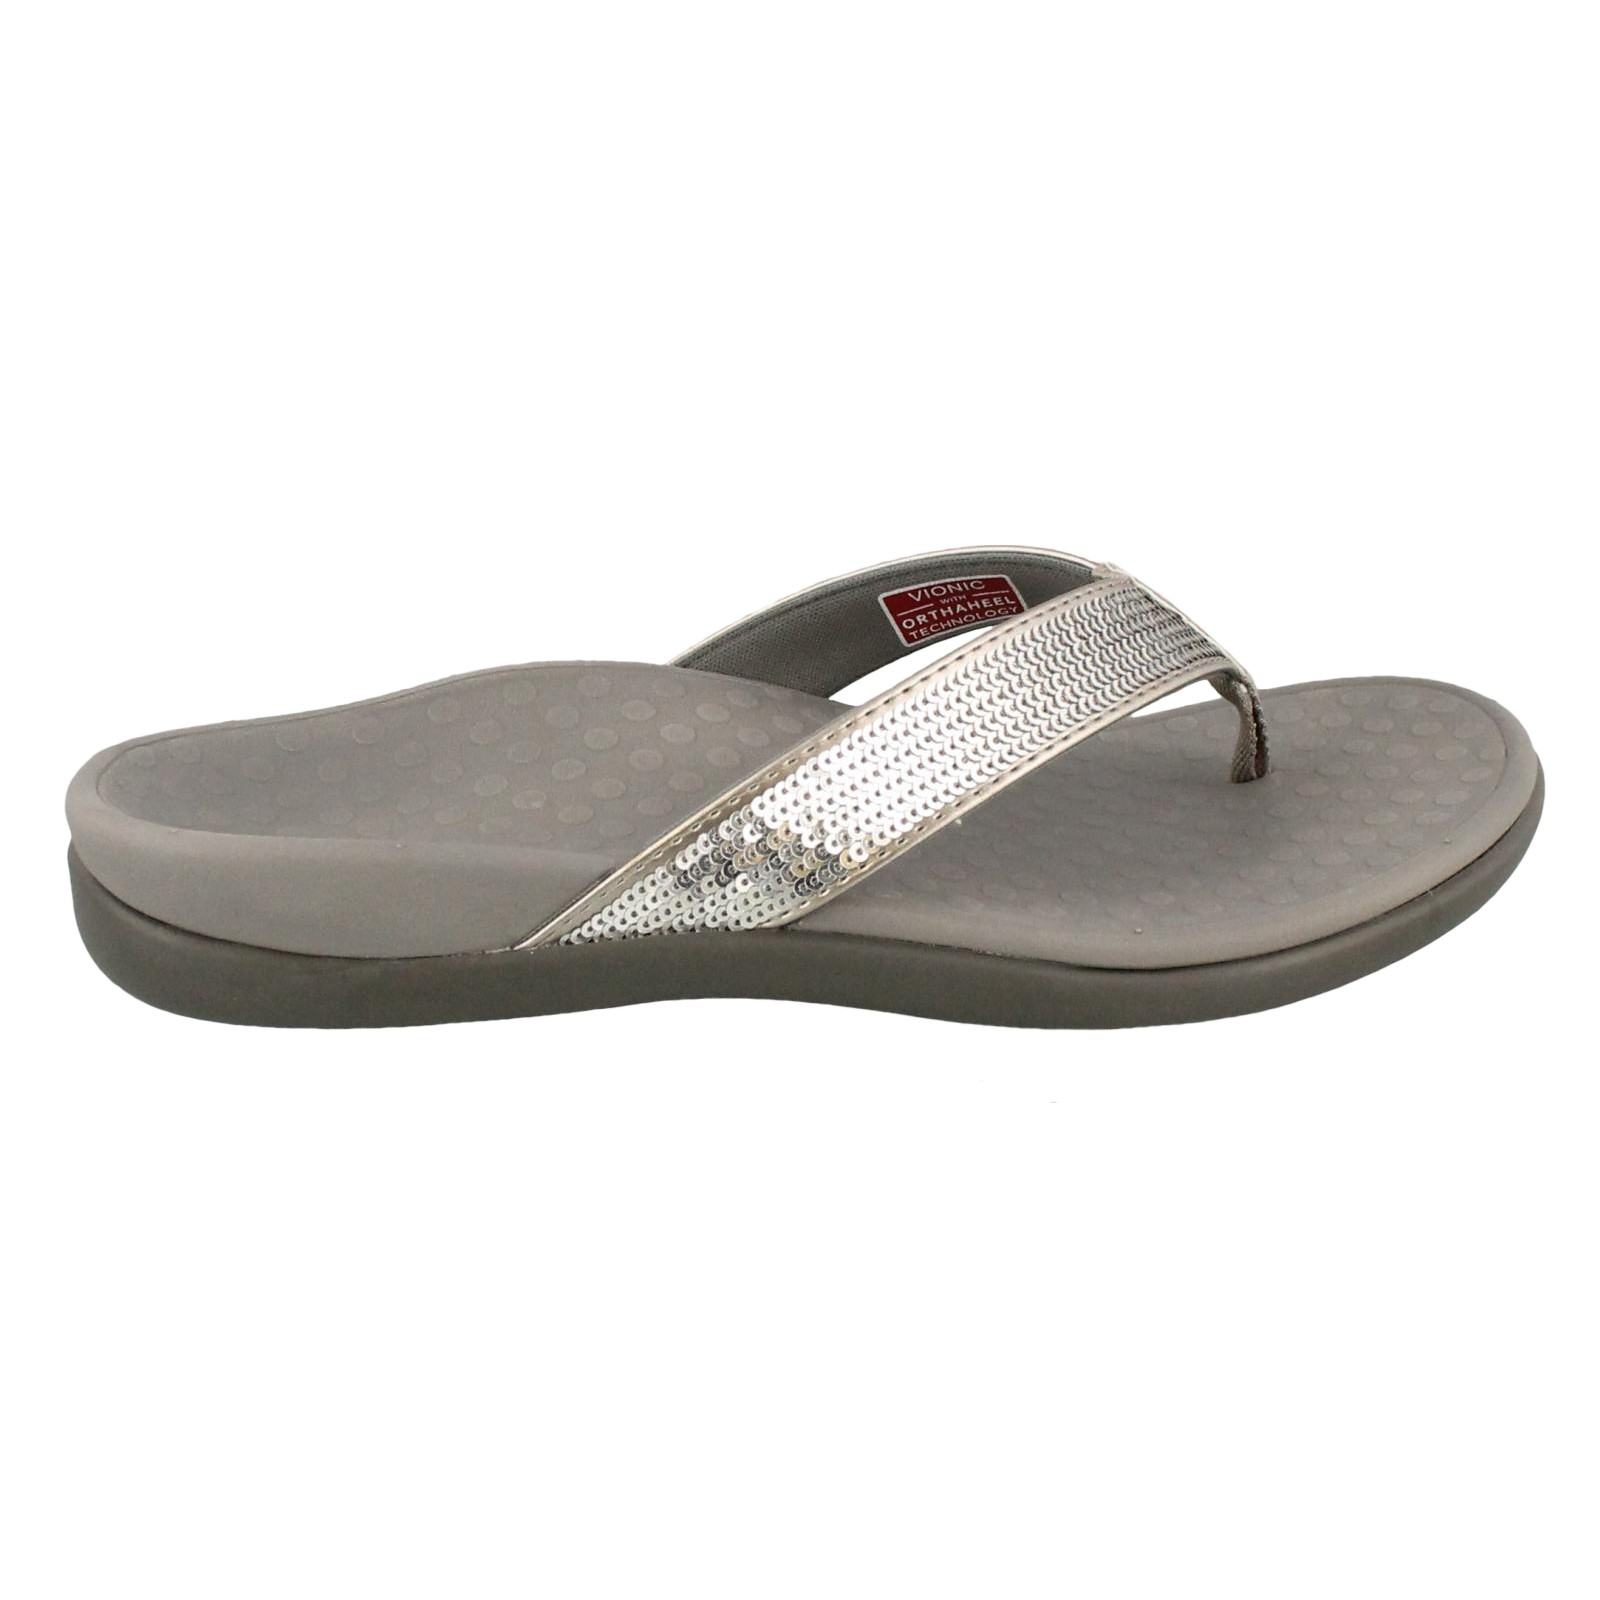 Women's Vionic, Tide sparkly thong sandals